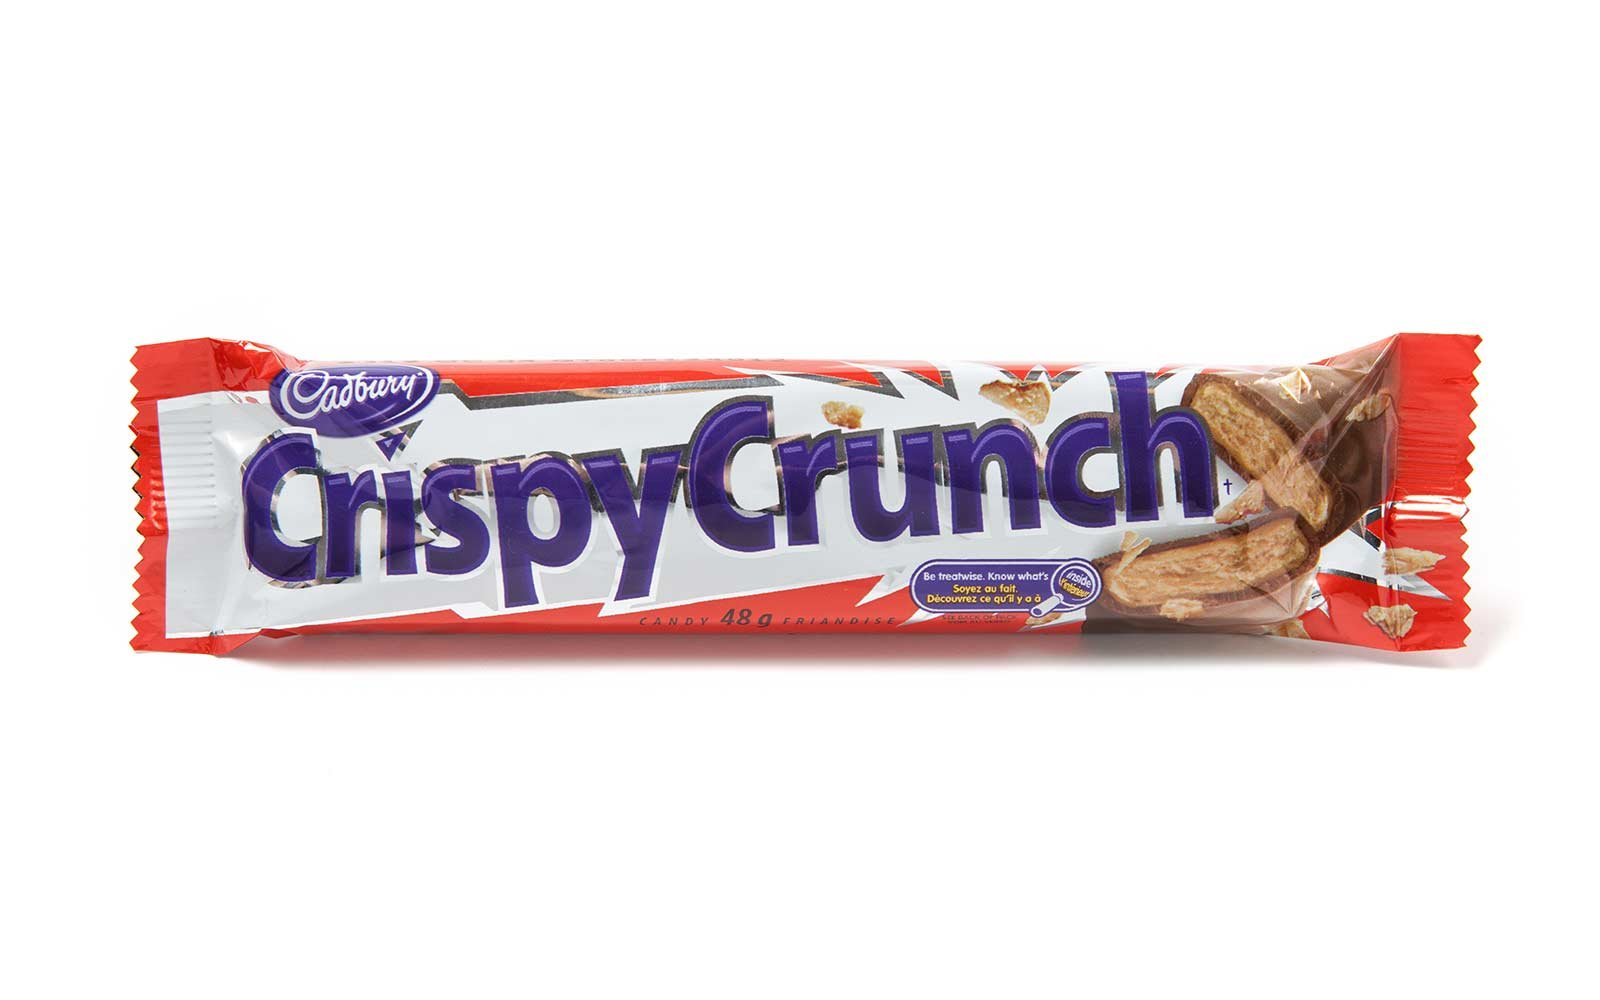 Crispy Crunch candy made by Cadbury Canada